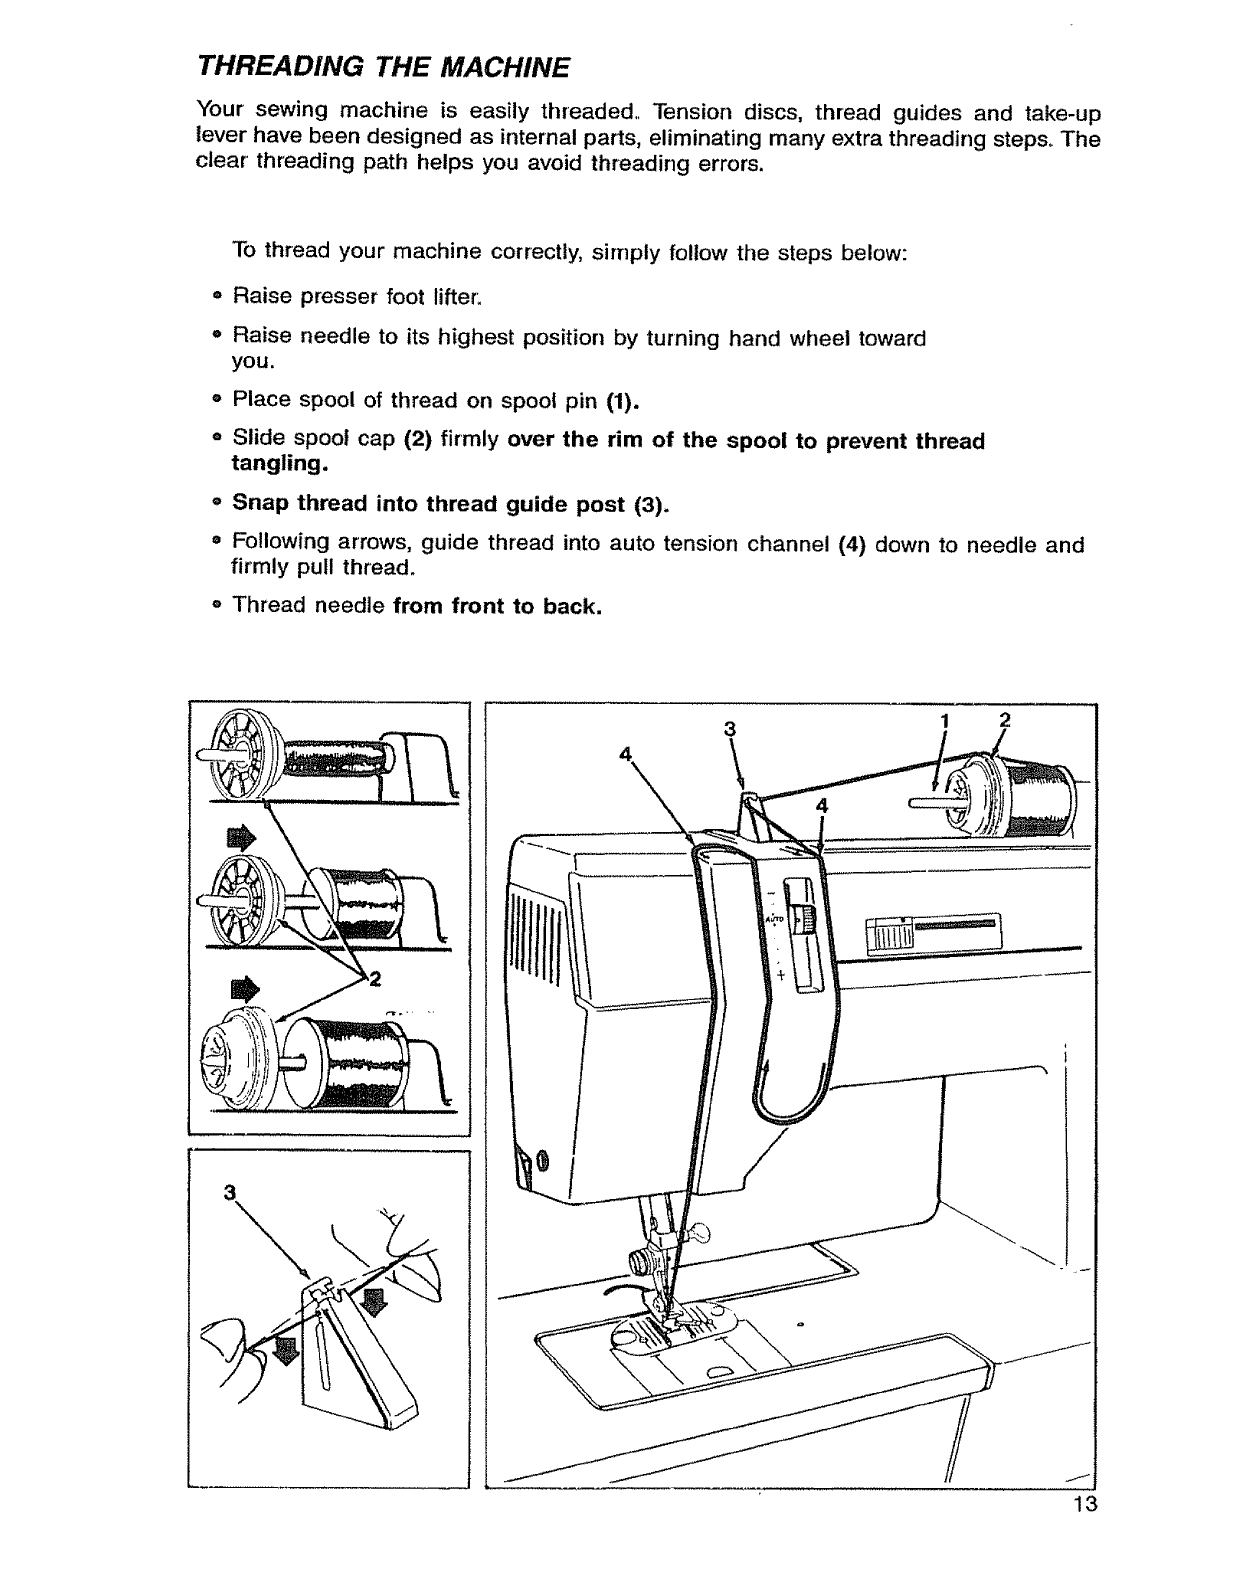 Singer 9134 User Manual Mechanical Sewing Machine Manuals And Guides Parts Diagram Threading The Your